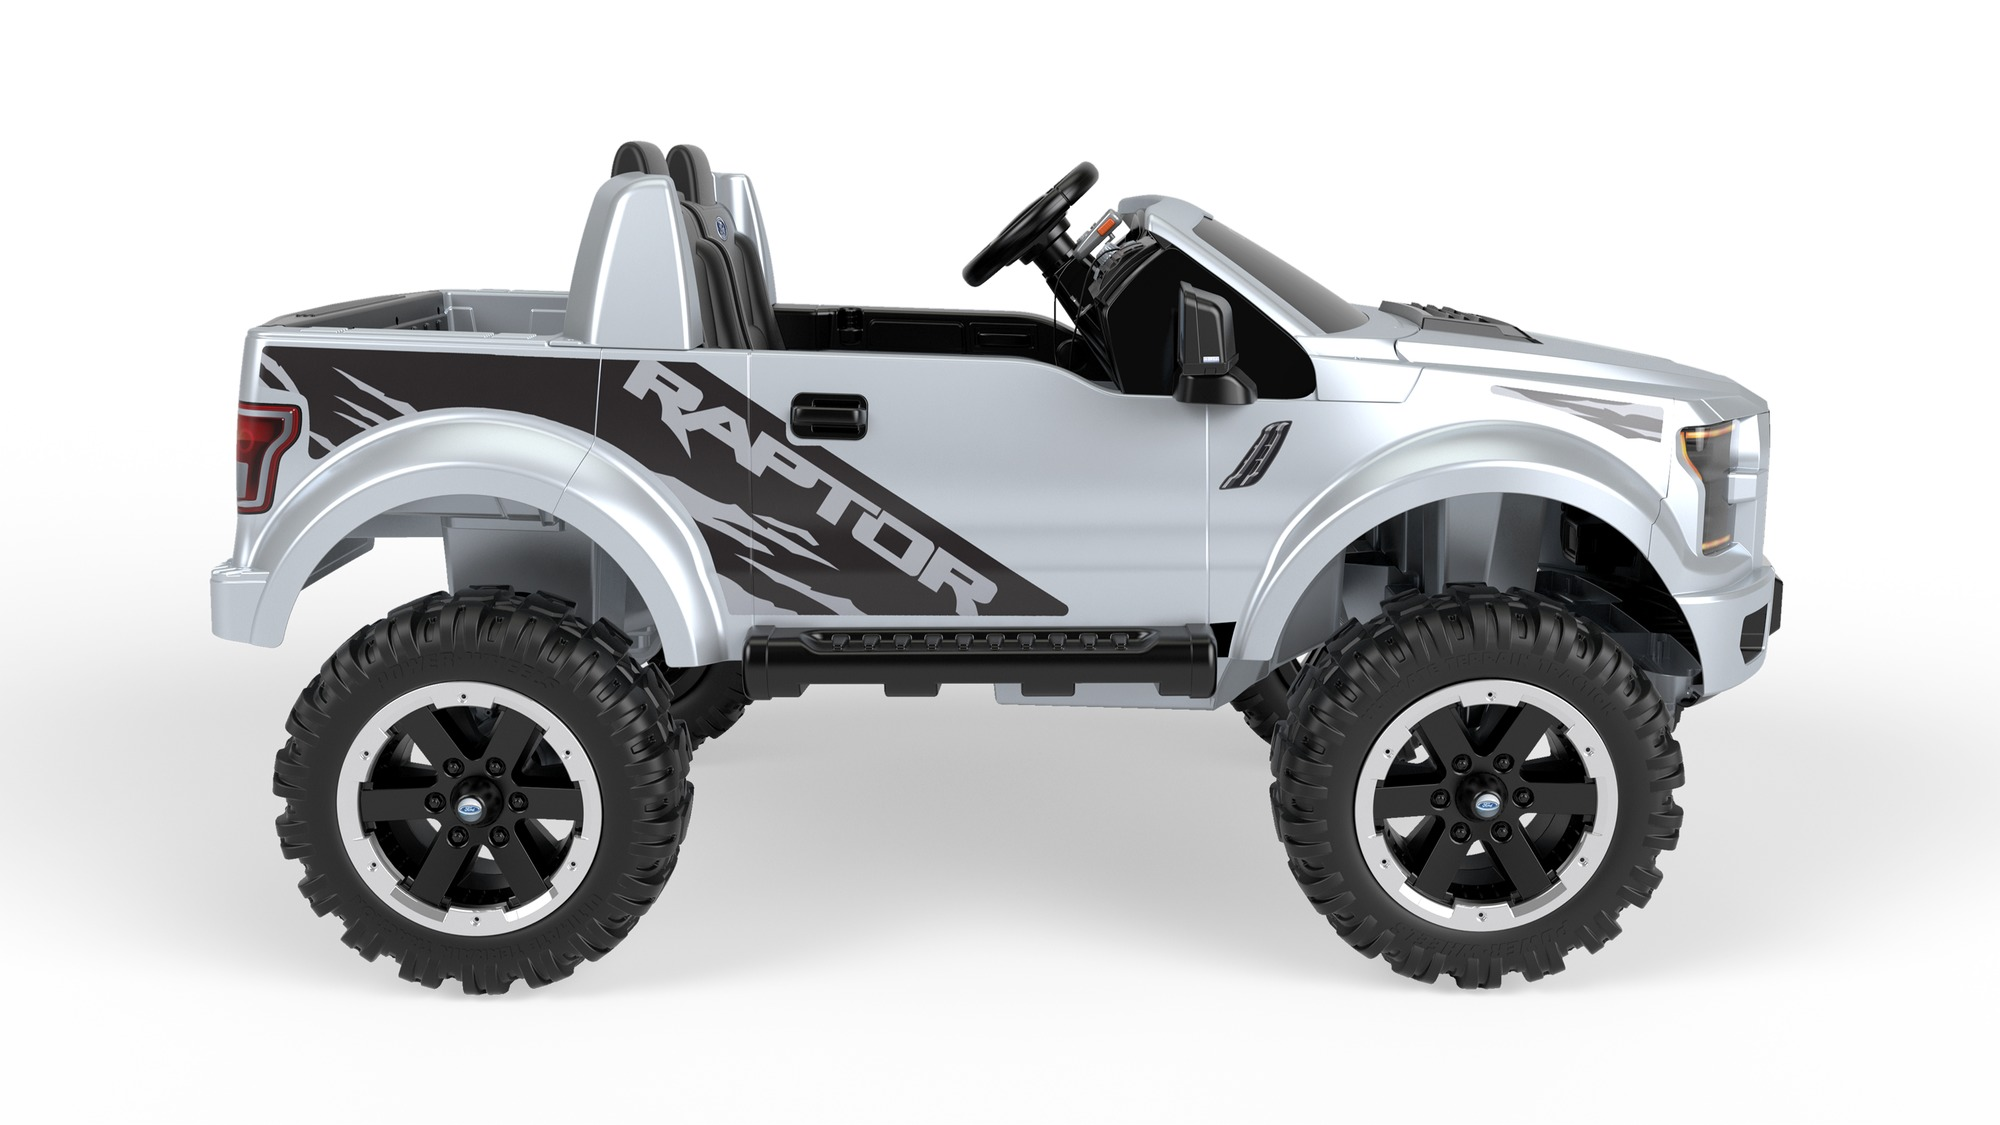 power wheels ford f 150 raptor extreme silver kids ride toys truck xmas gift new ebay. Black Bedroom Furniture Sets. Home Design Ideas